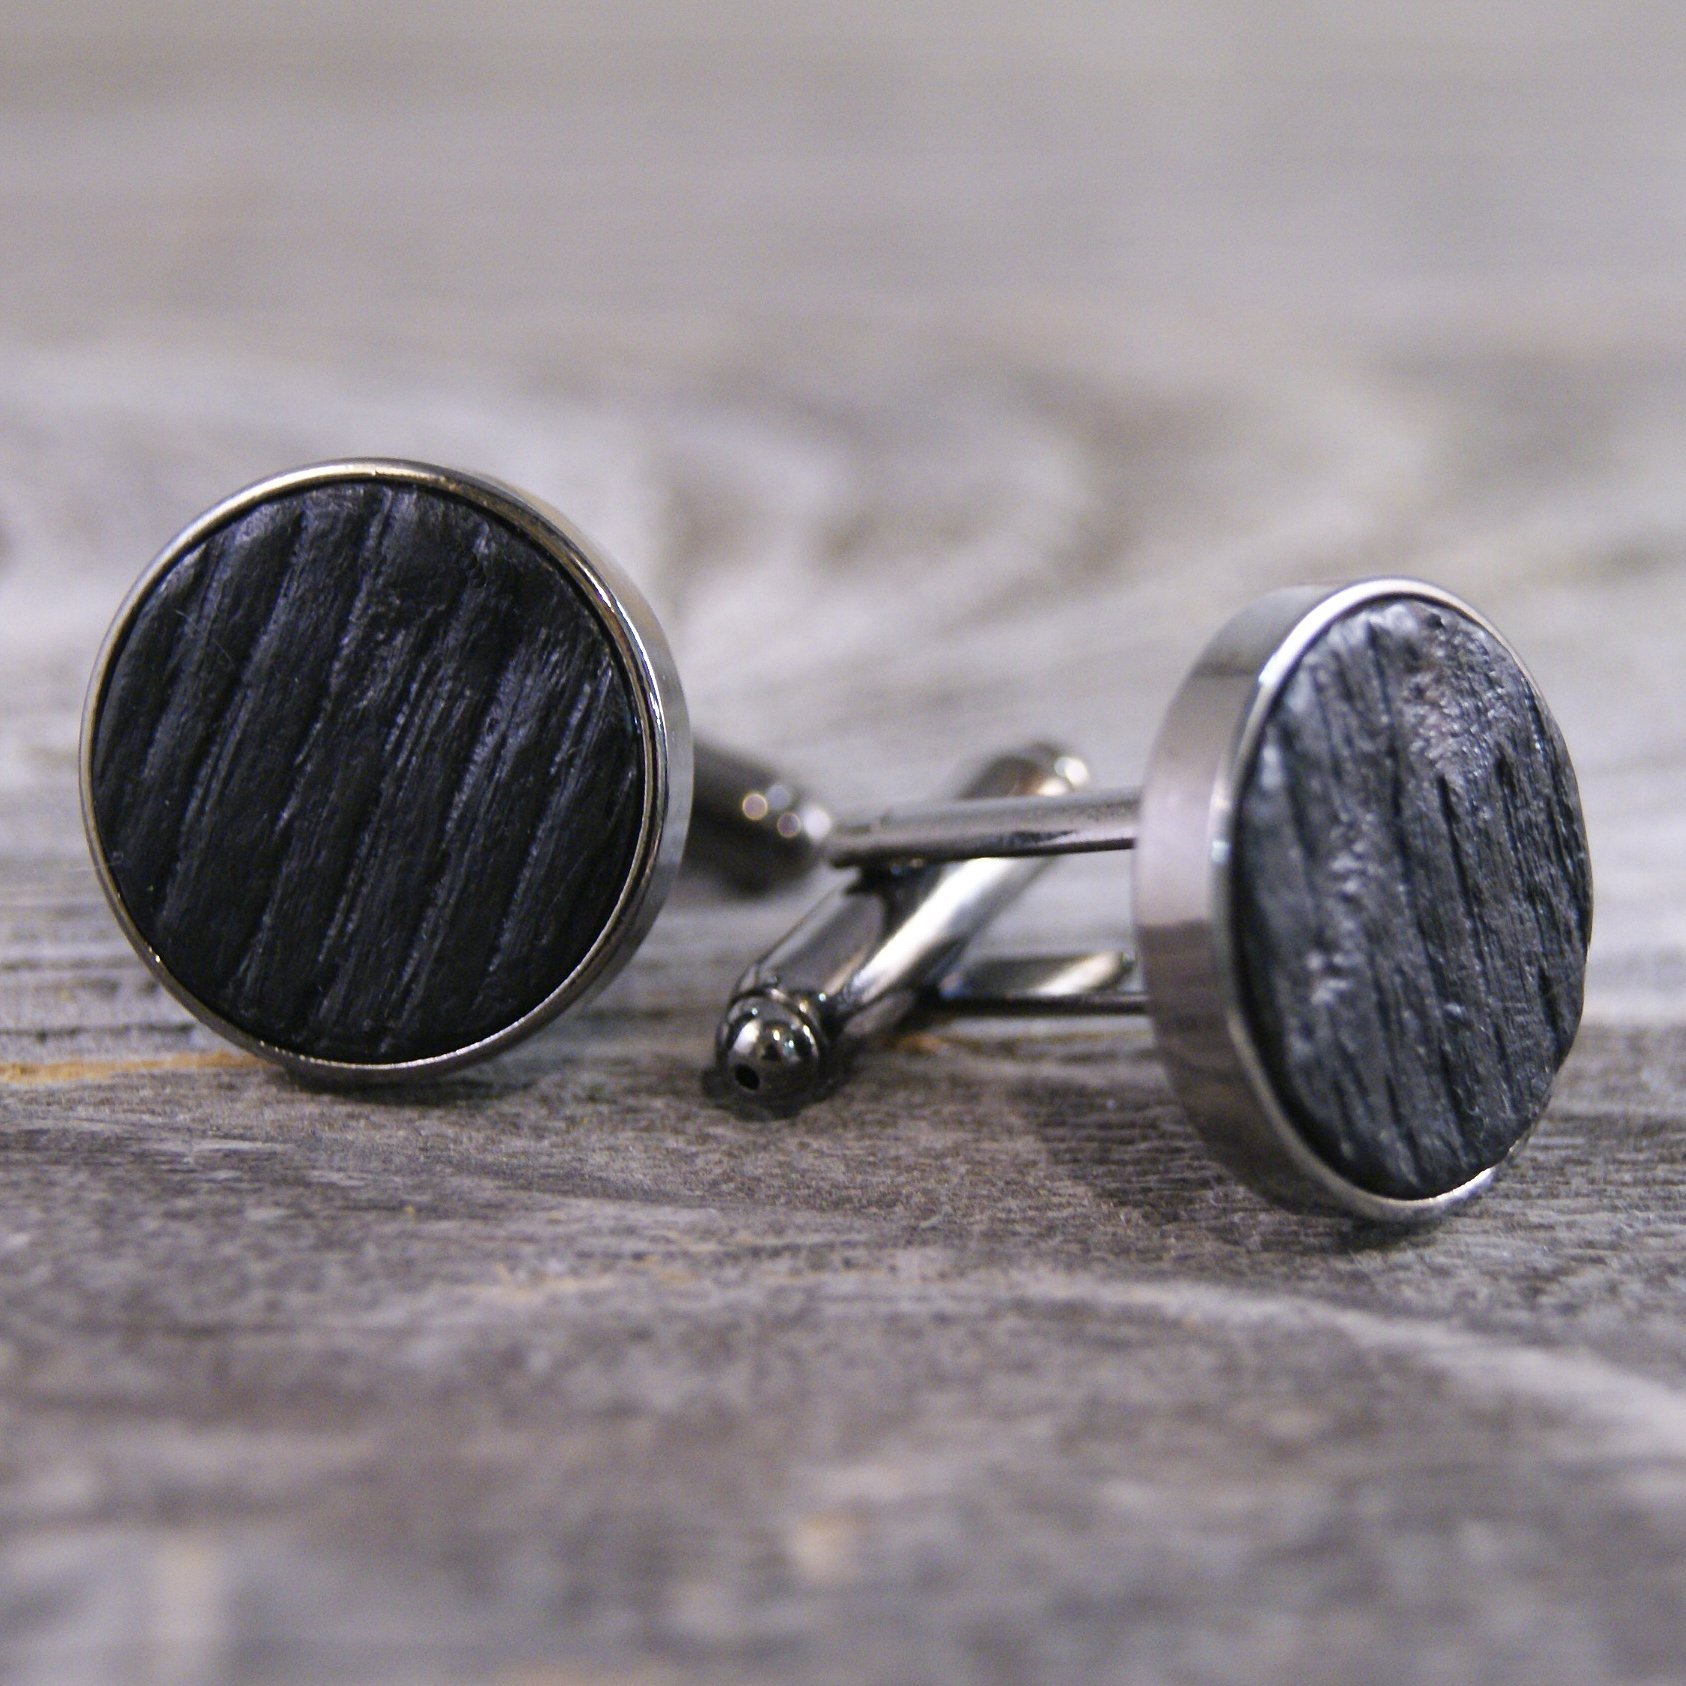 Cufflinks Crafted from a Whiskey Barrel Stave